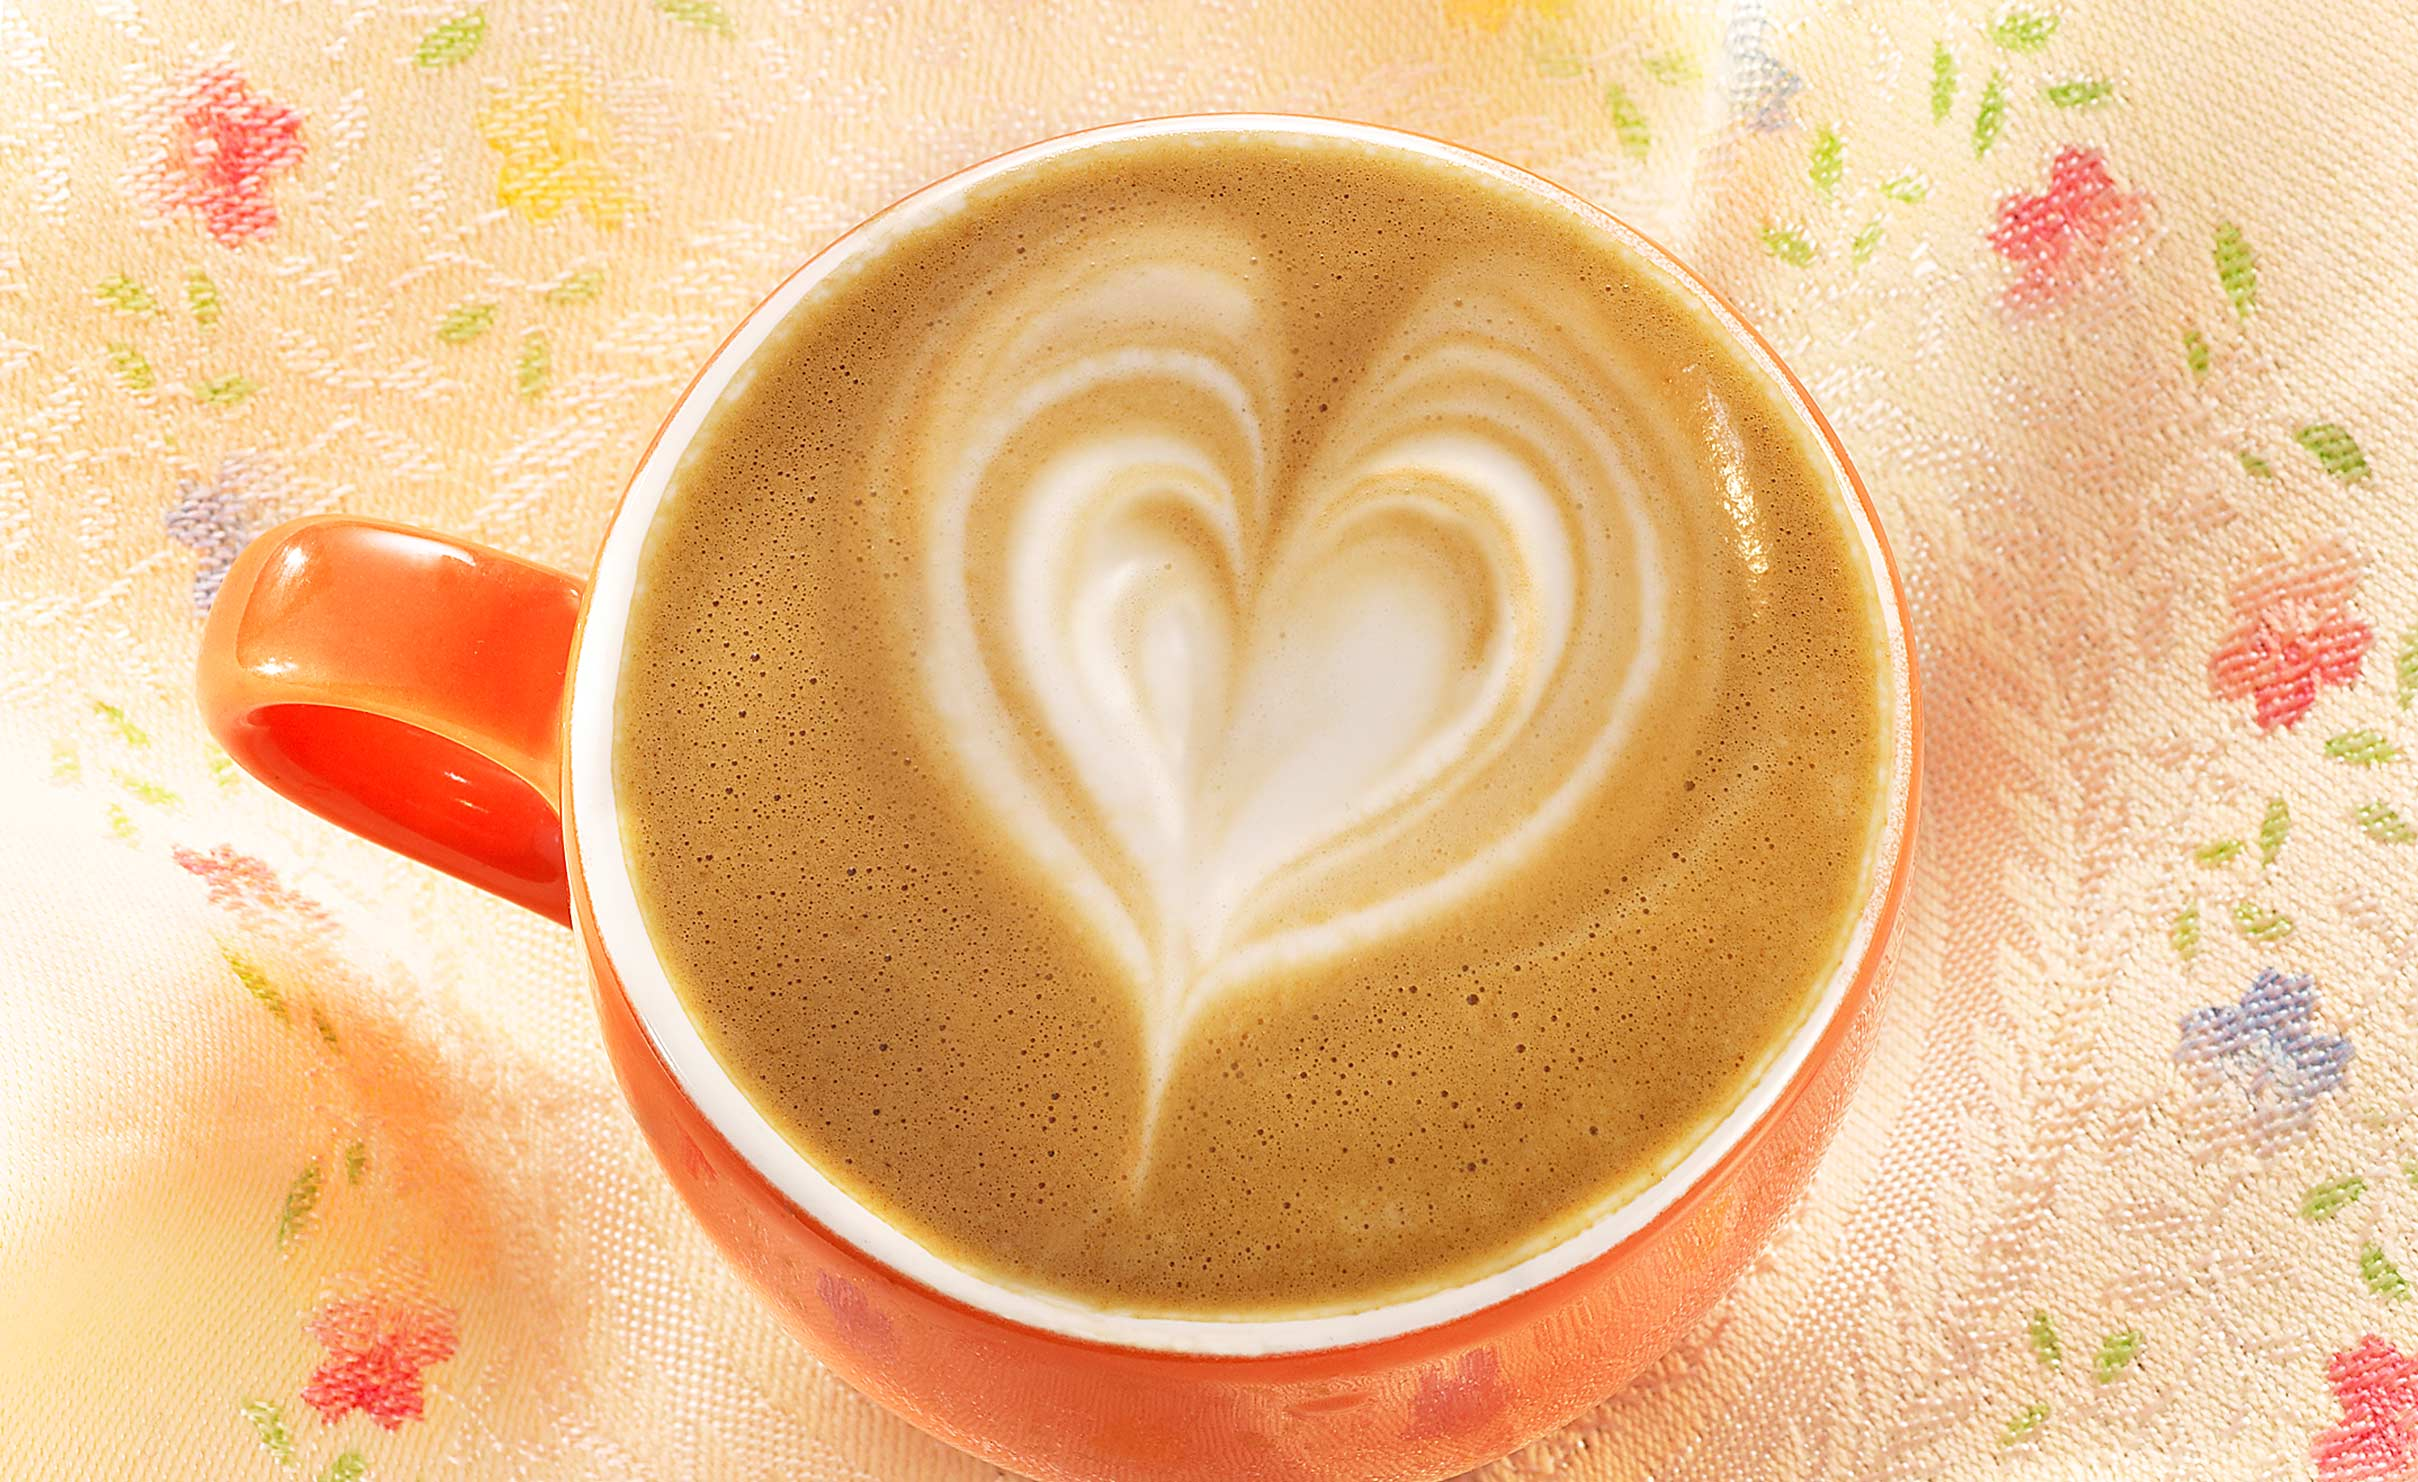 Glasshouse Assignment - David Bishop - Beverage Photography - Latte Heart